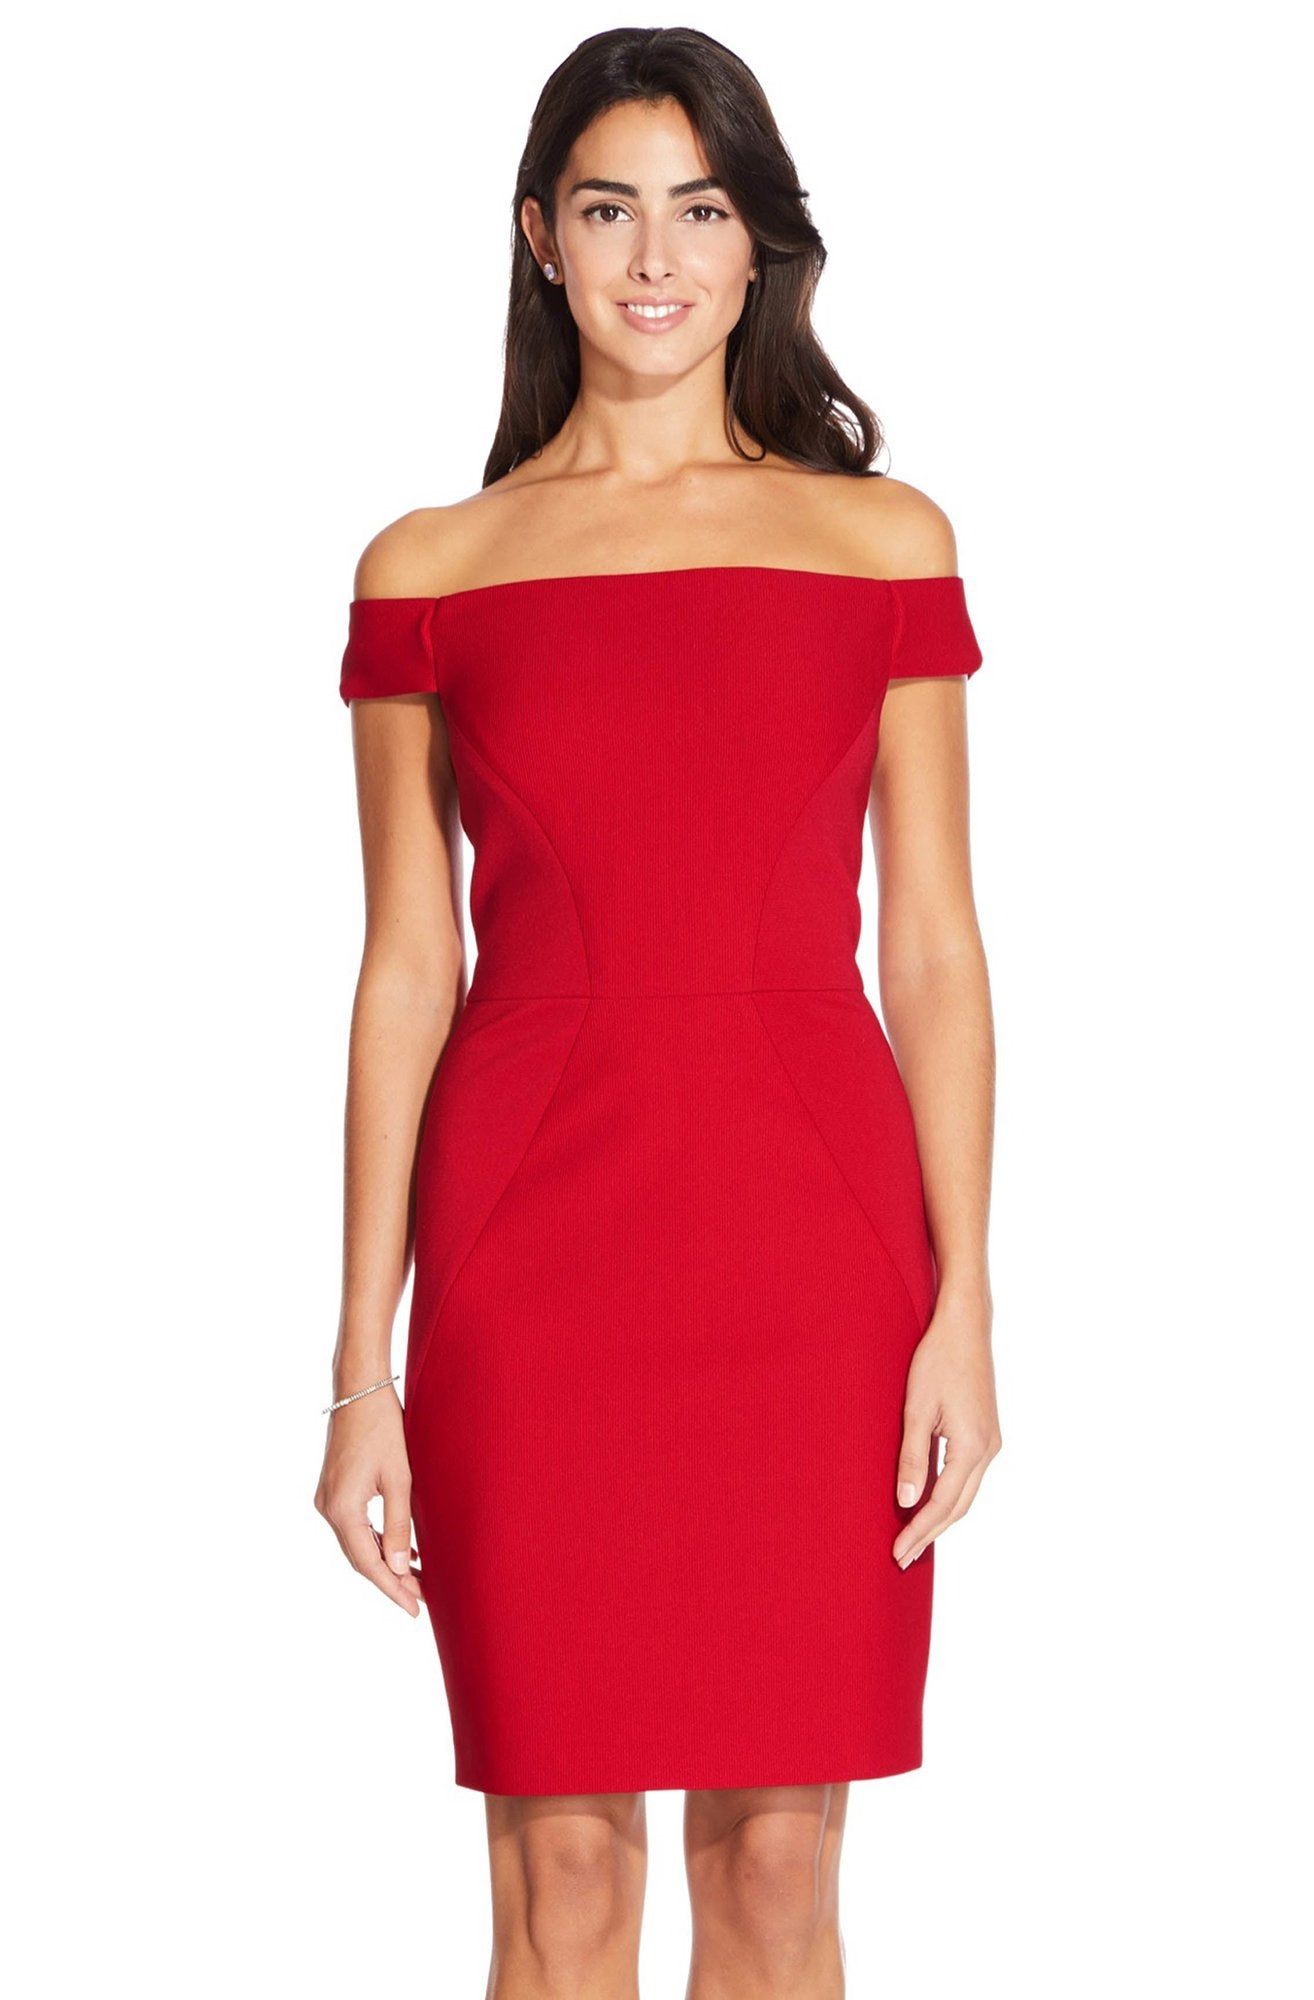 Adrianna Papell - AP1D102854 Off Shoulder Fitted Cocktail Dress In Red